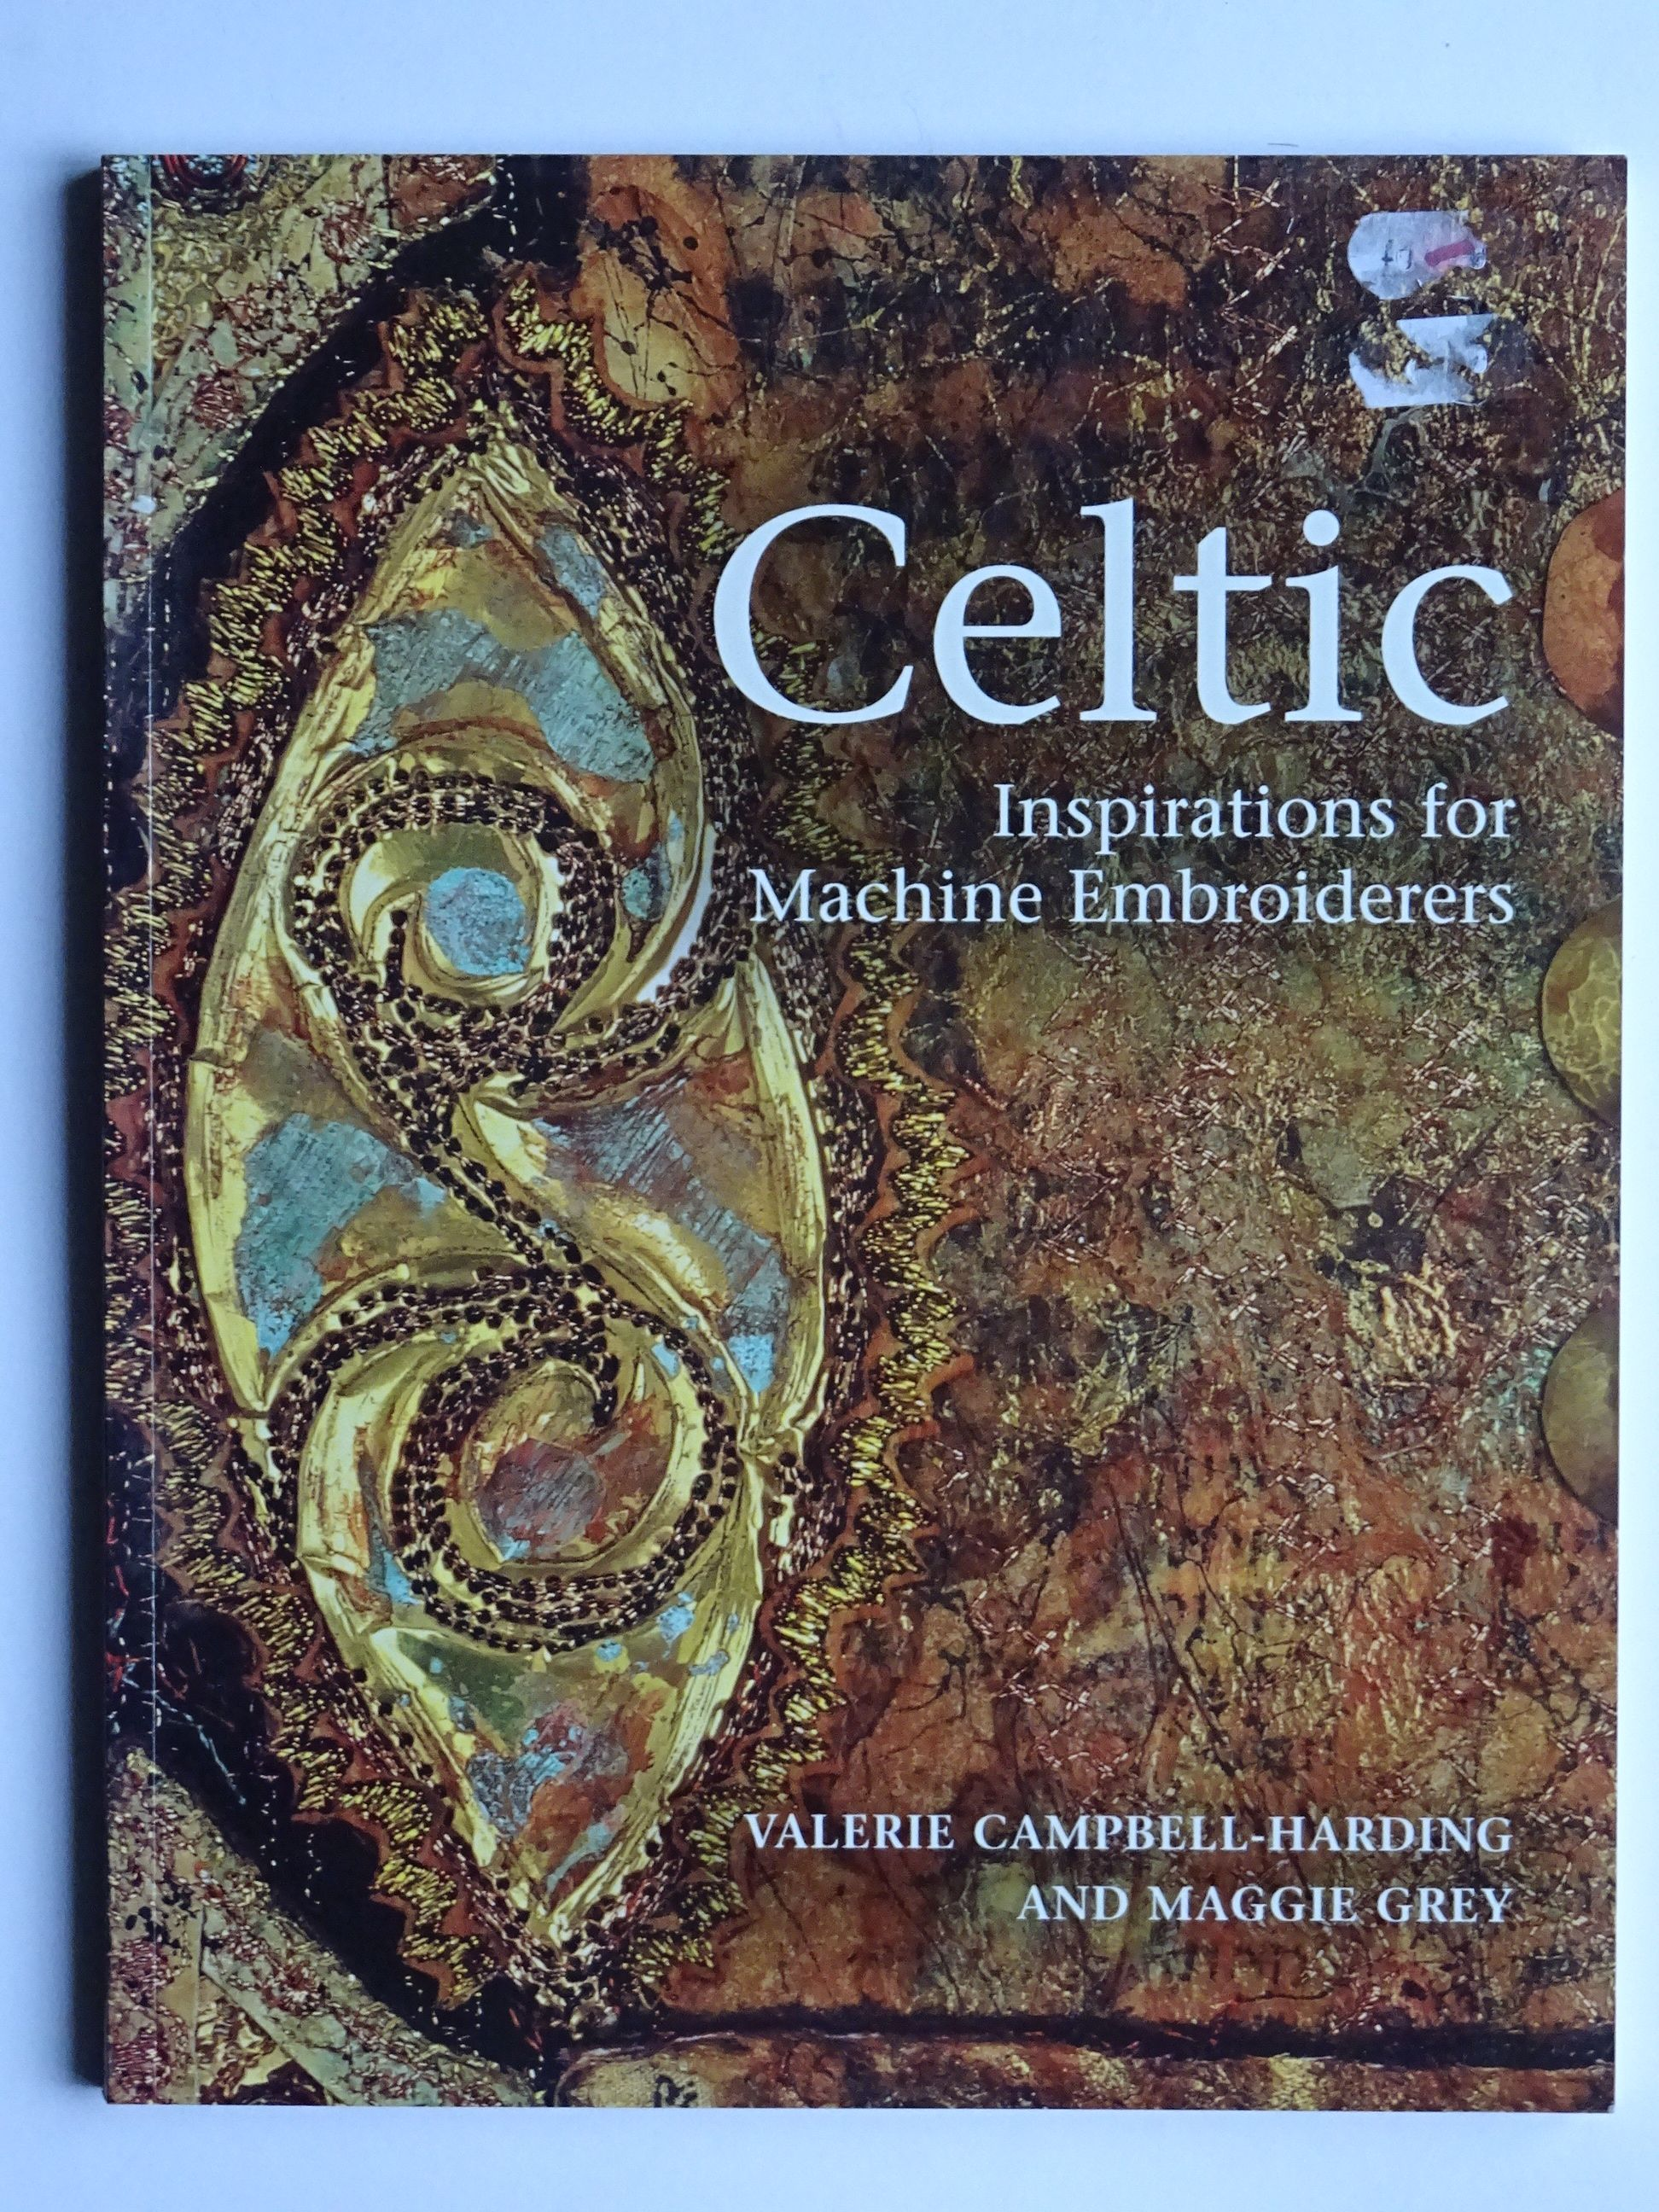 Campbell Harding, Valerie, & Grey, Maggie - Celtic Inspirations for Machine Embroiderers